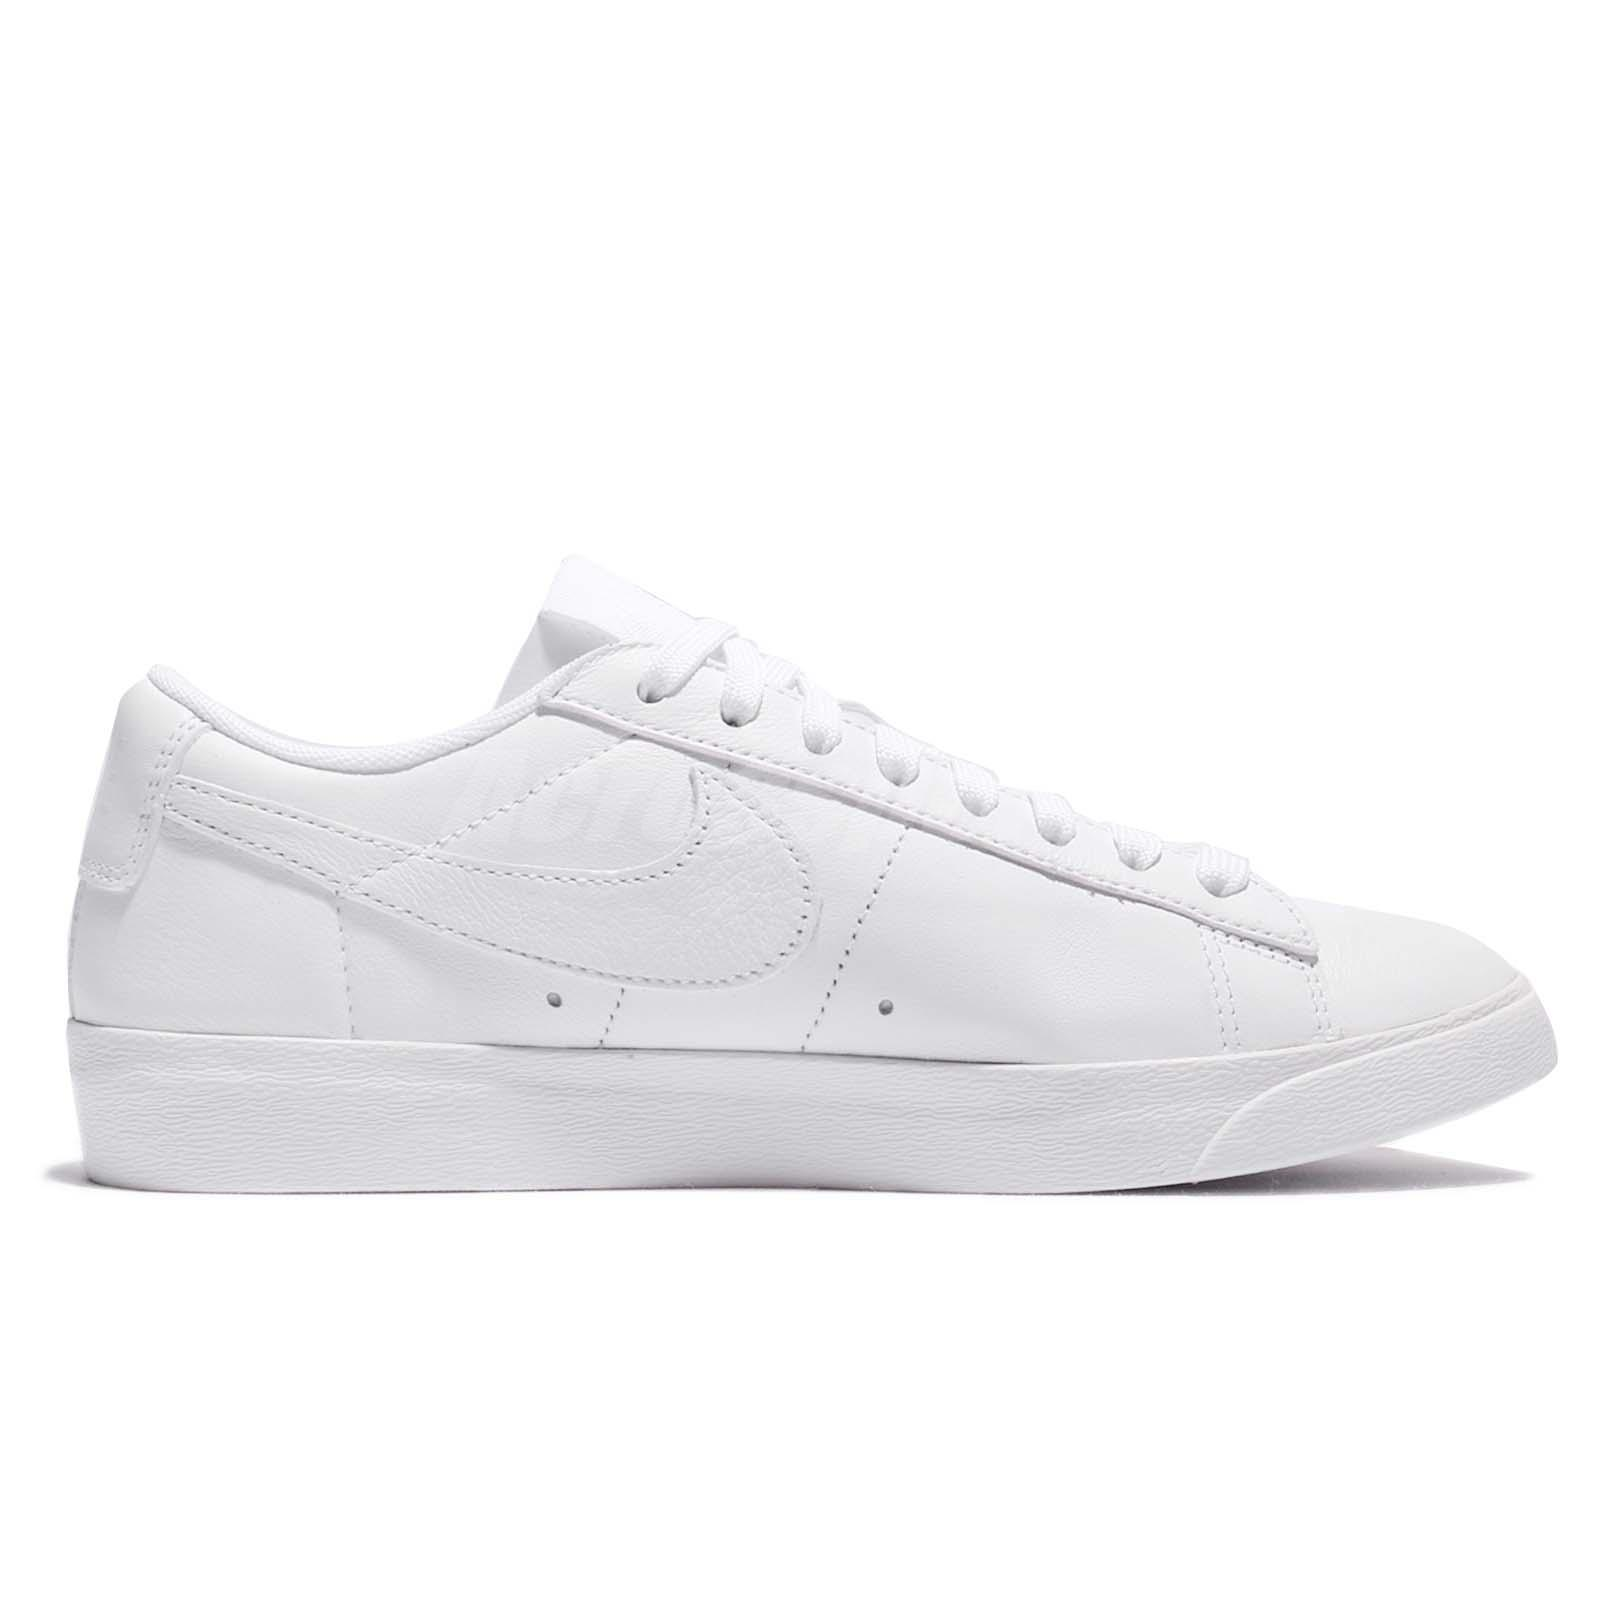 aa5819bf160 Wmns Nike Blazer Low LE Triple White Leather Women Shoes Sneakers ...